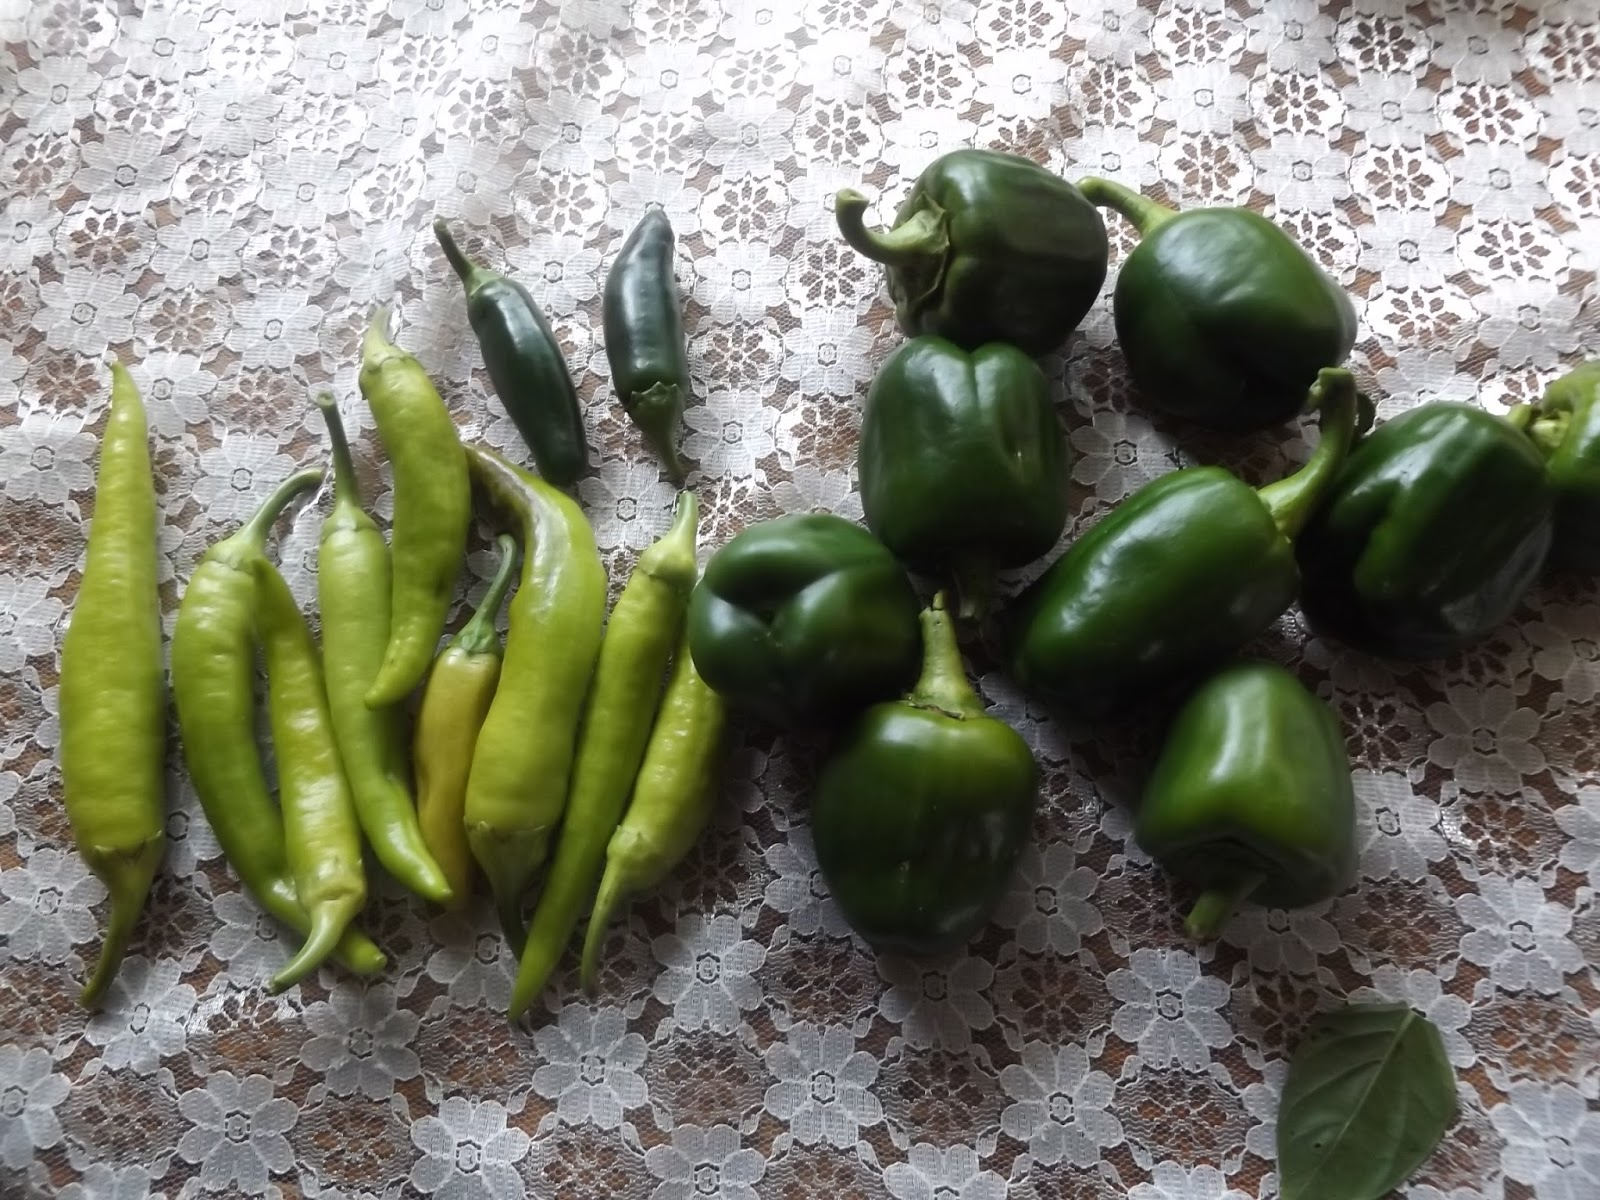 from the garden peas 30 bananas a day pickled peppers from the garden 30 bananas a day 902